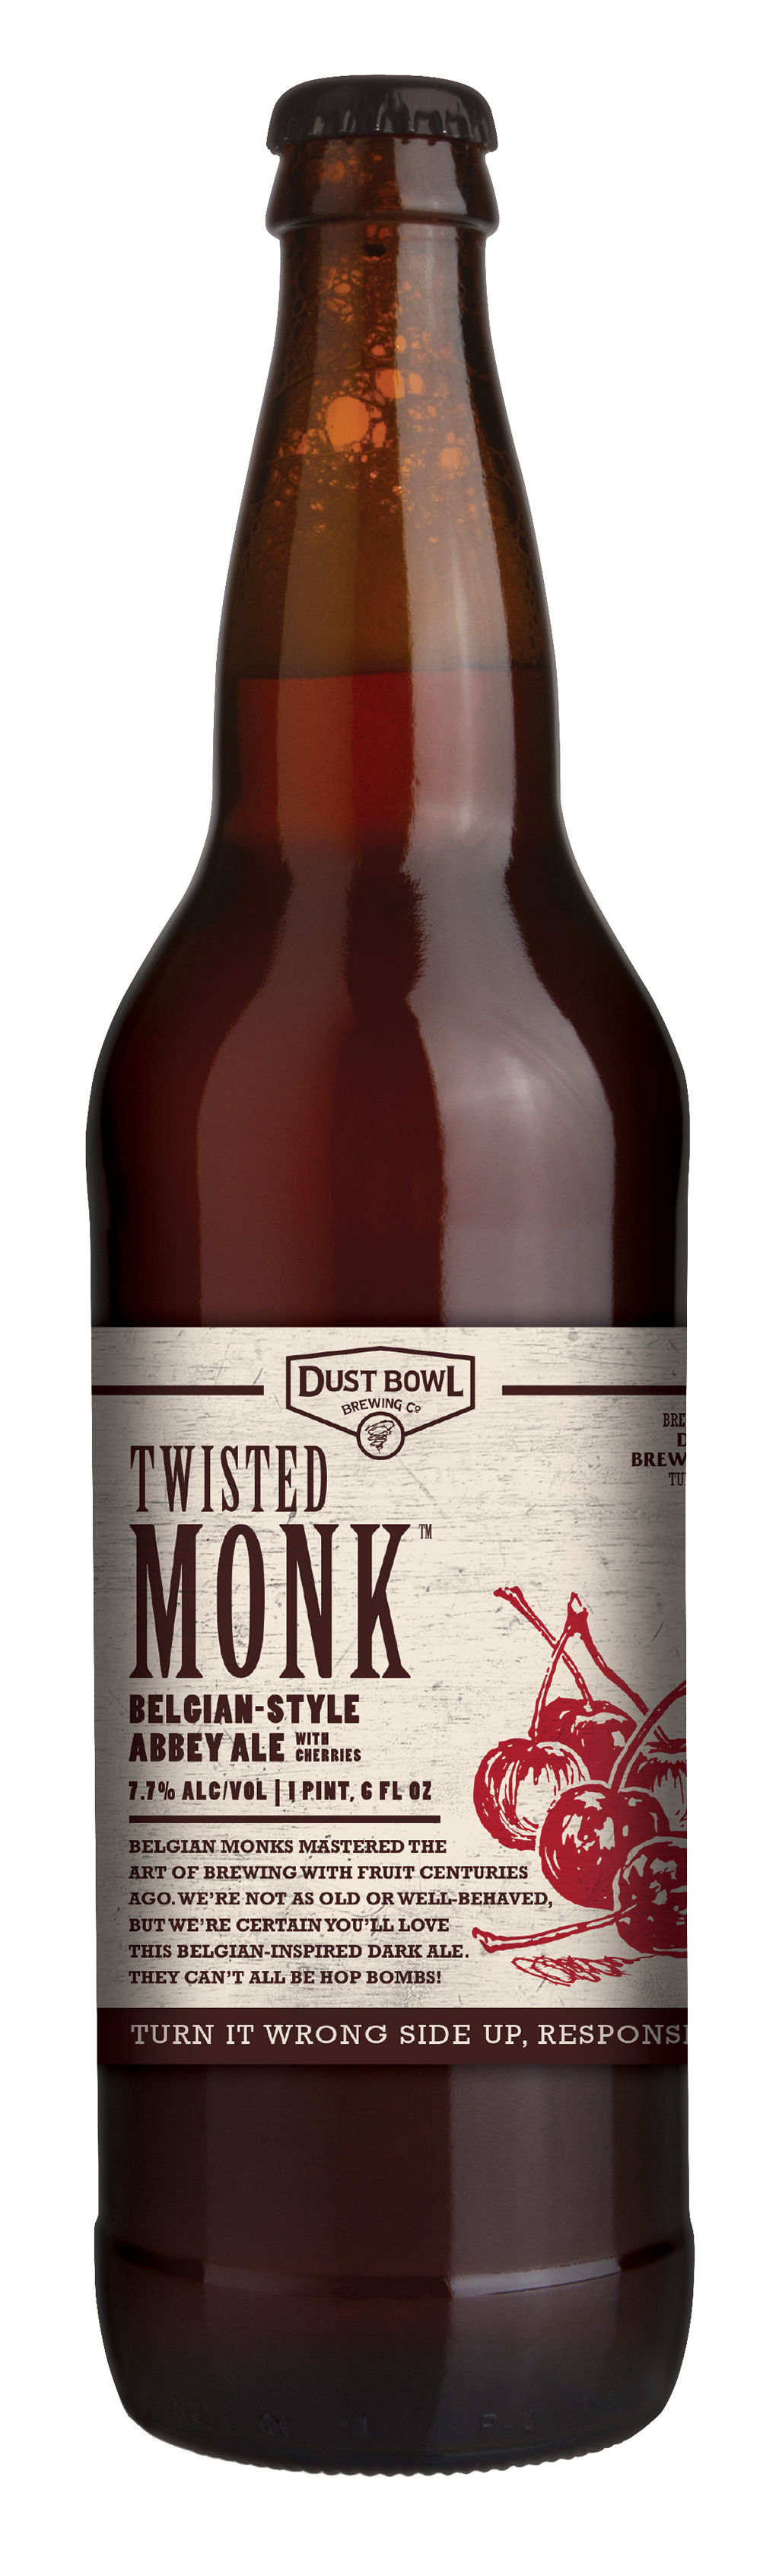 Twisted Monk Bottle by Dust Bowl Brewing Co.